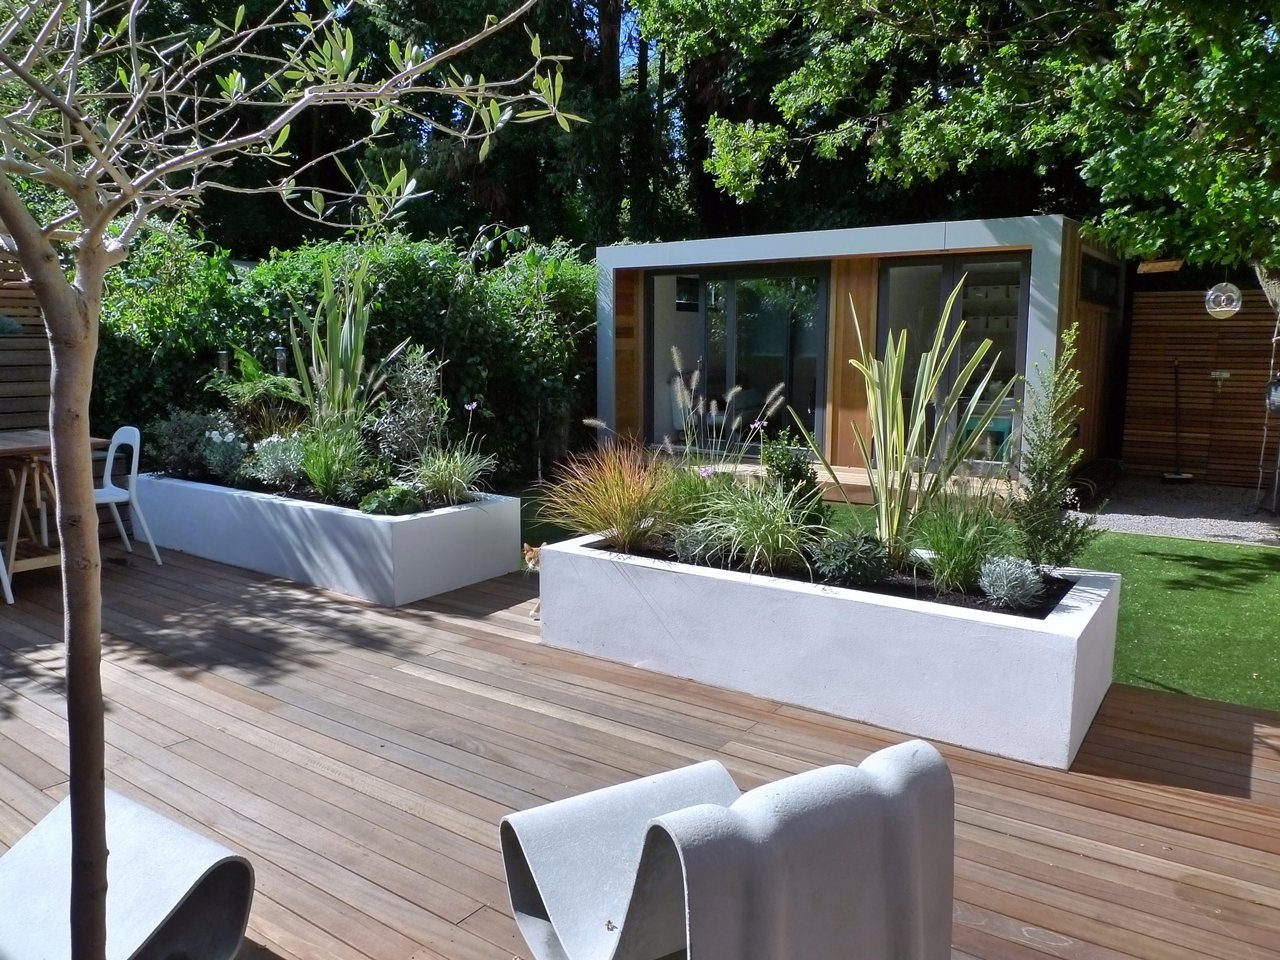 Modern style and design in a london garden london garden - Amenagement jardin moderne ...